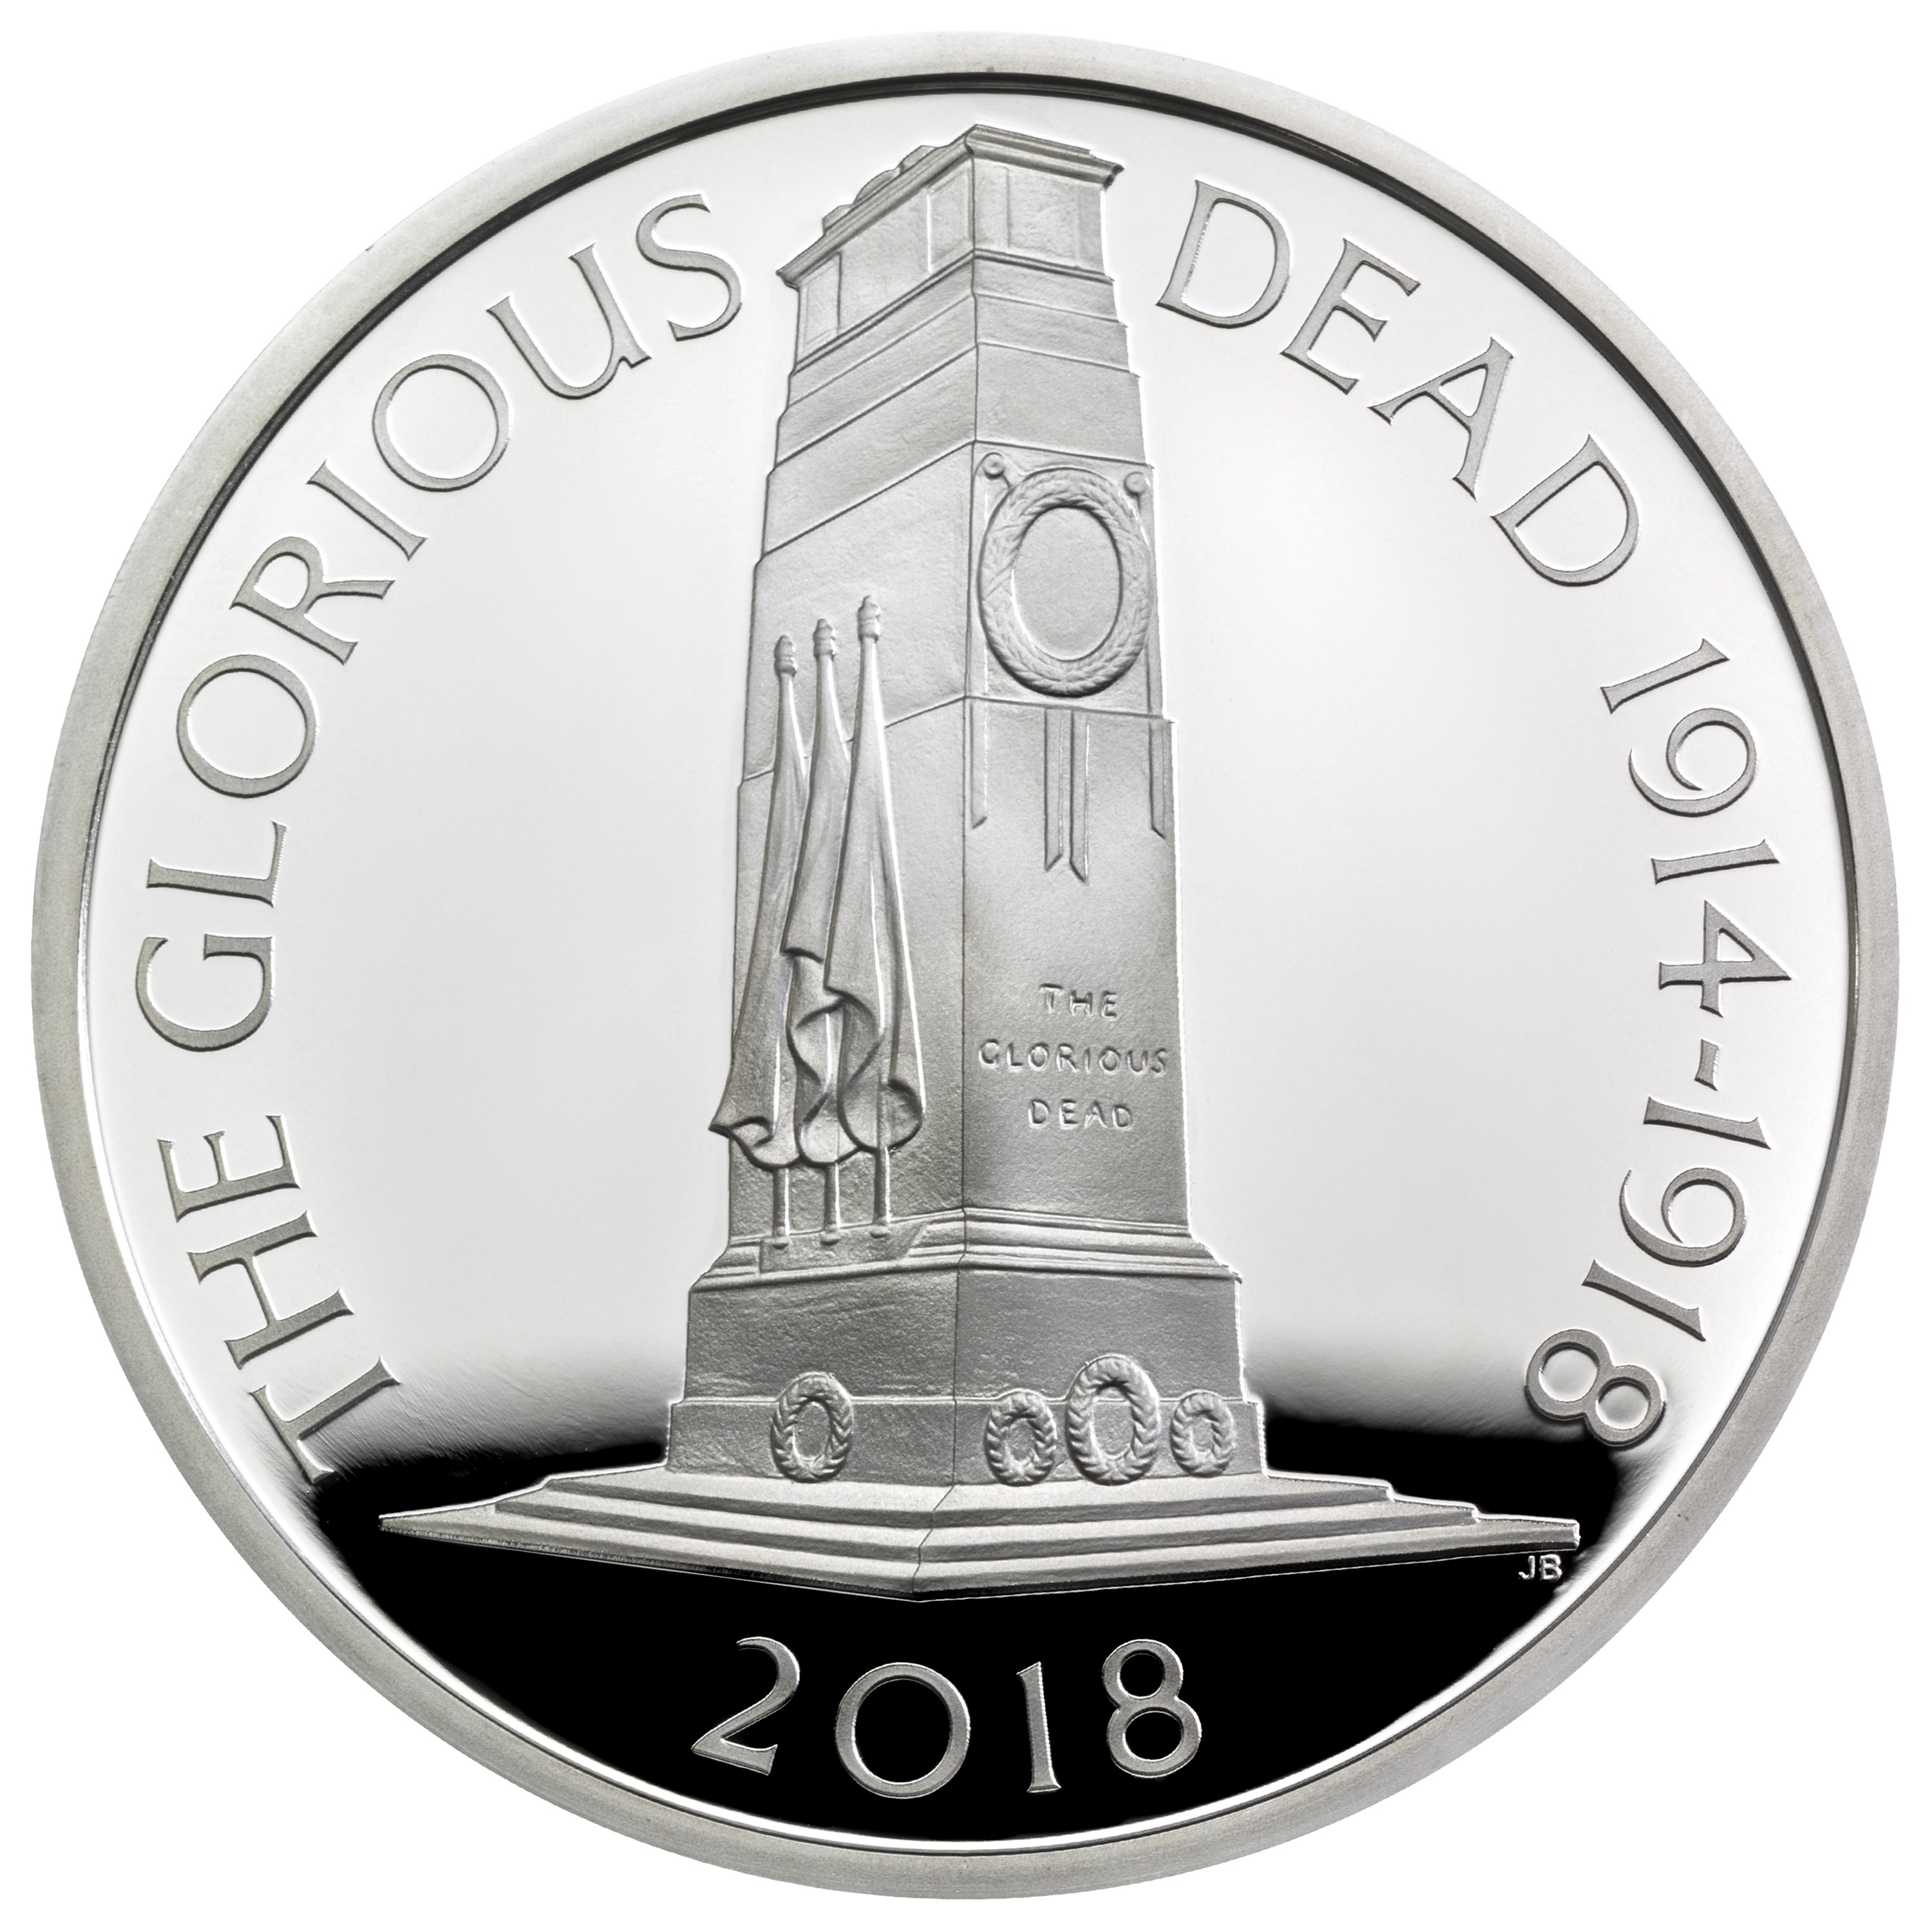 main image for British Coins Commemorate Centennial Of World War I